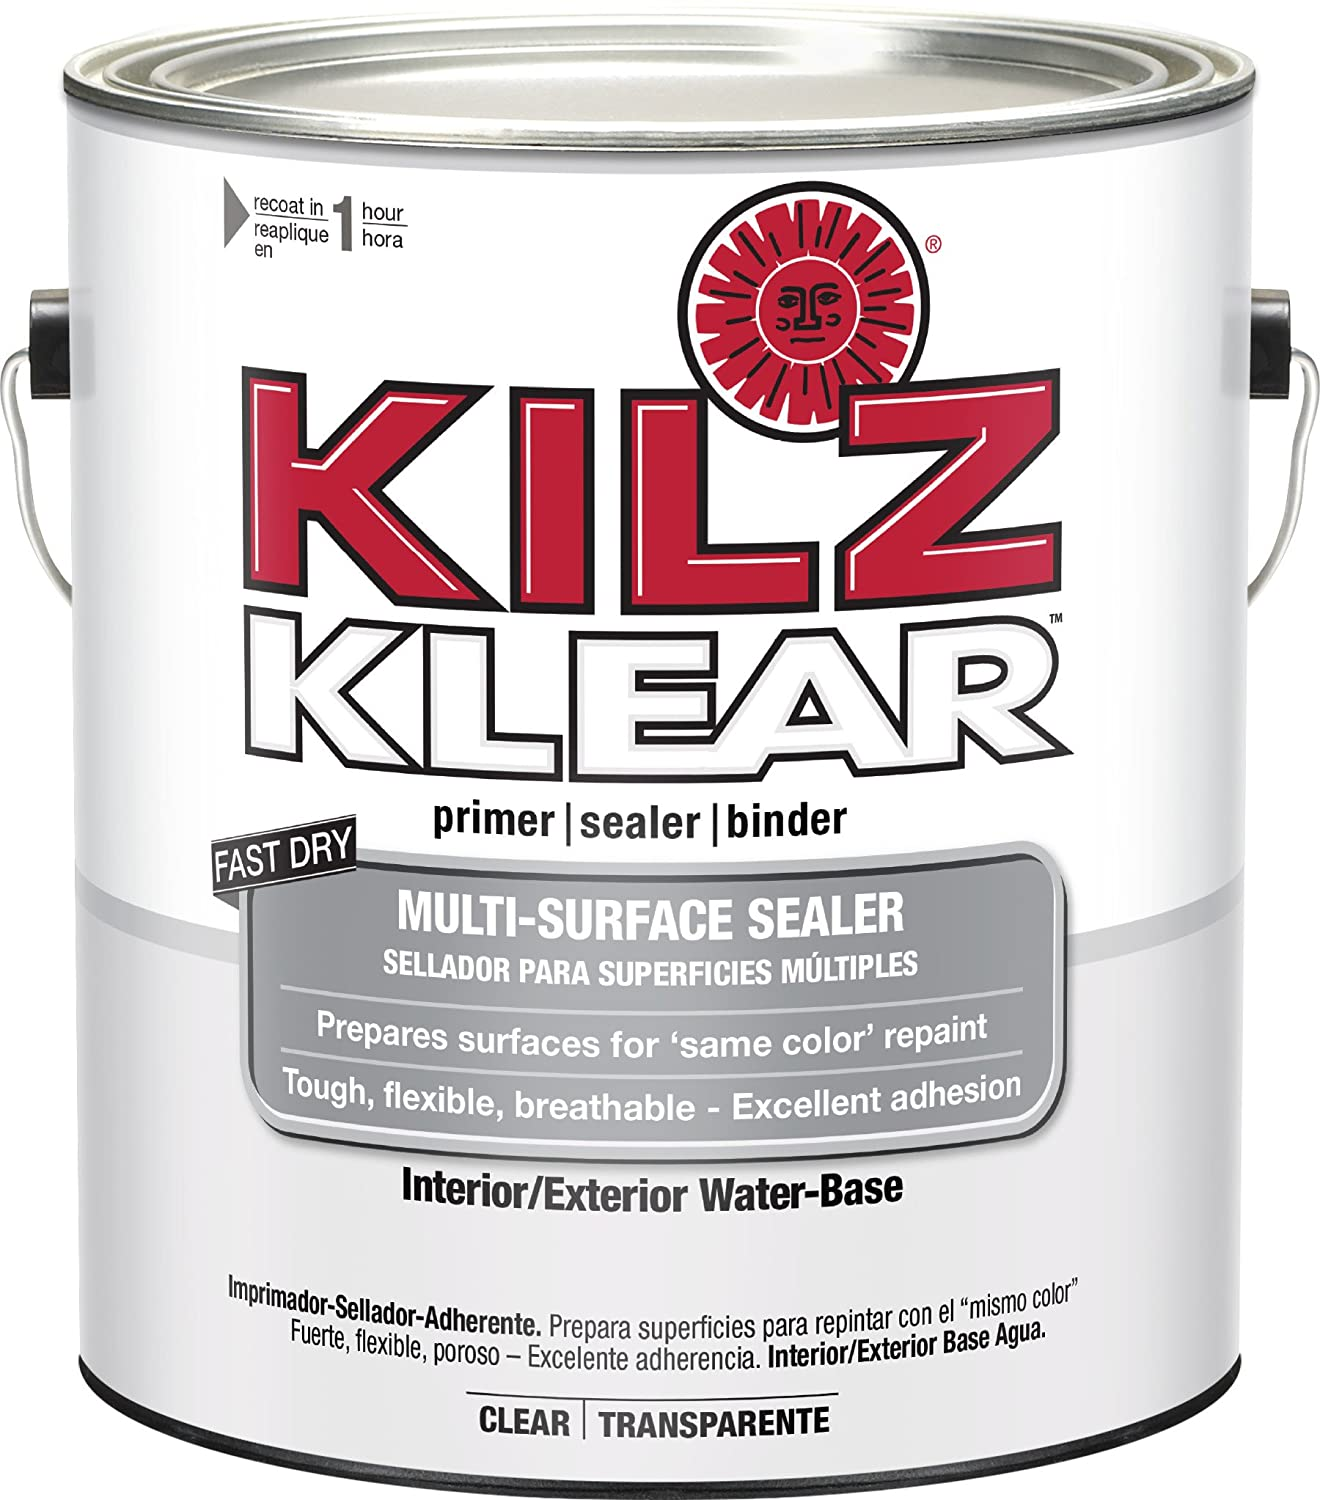 Amazon.com: KILZ Klear Multi-Surface Stain Blocking Interior ...